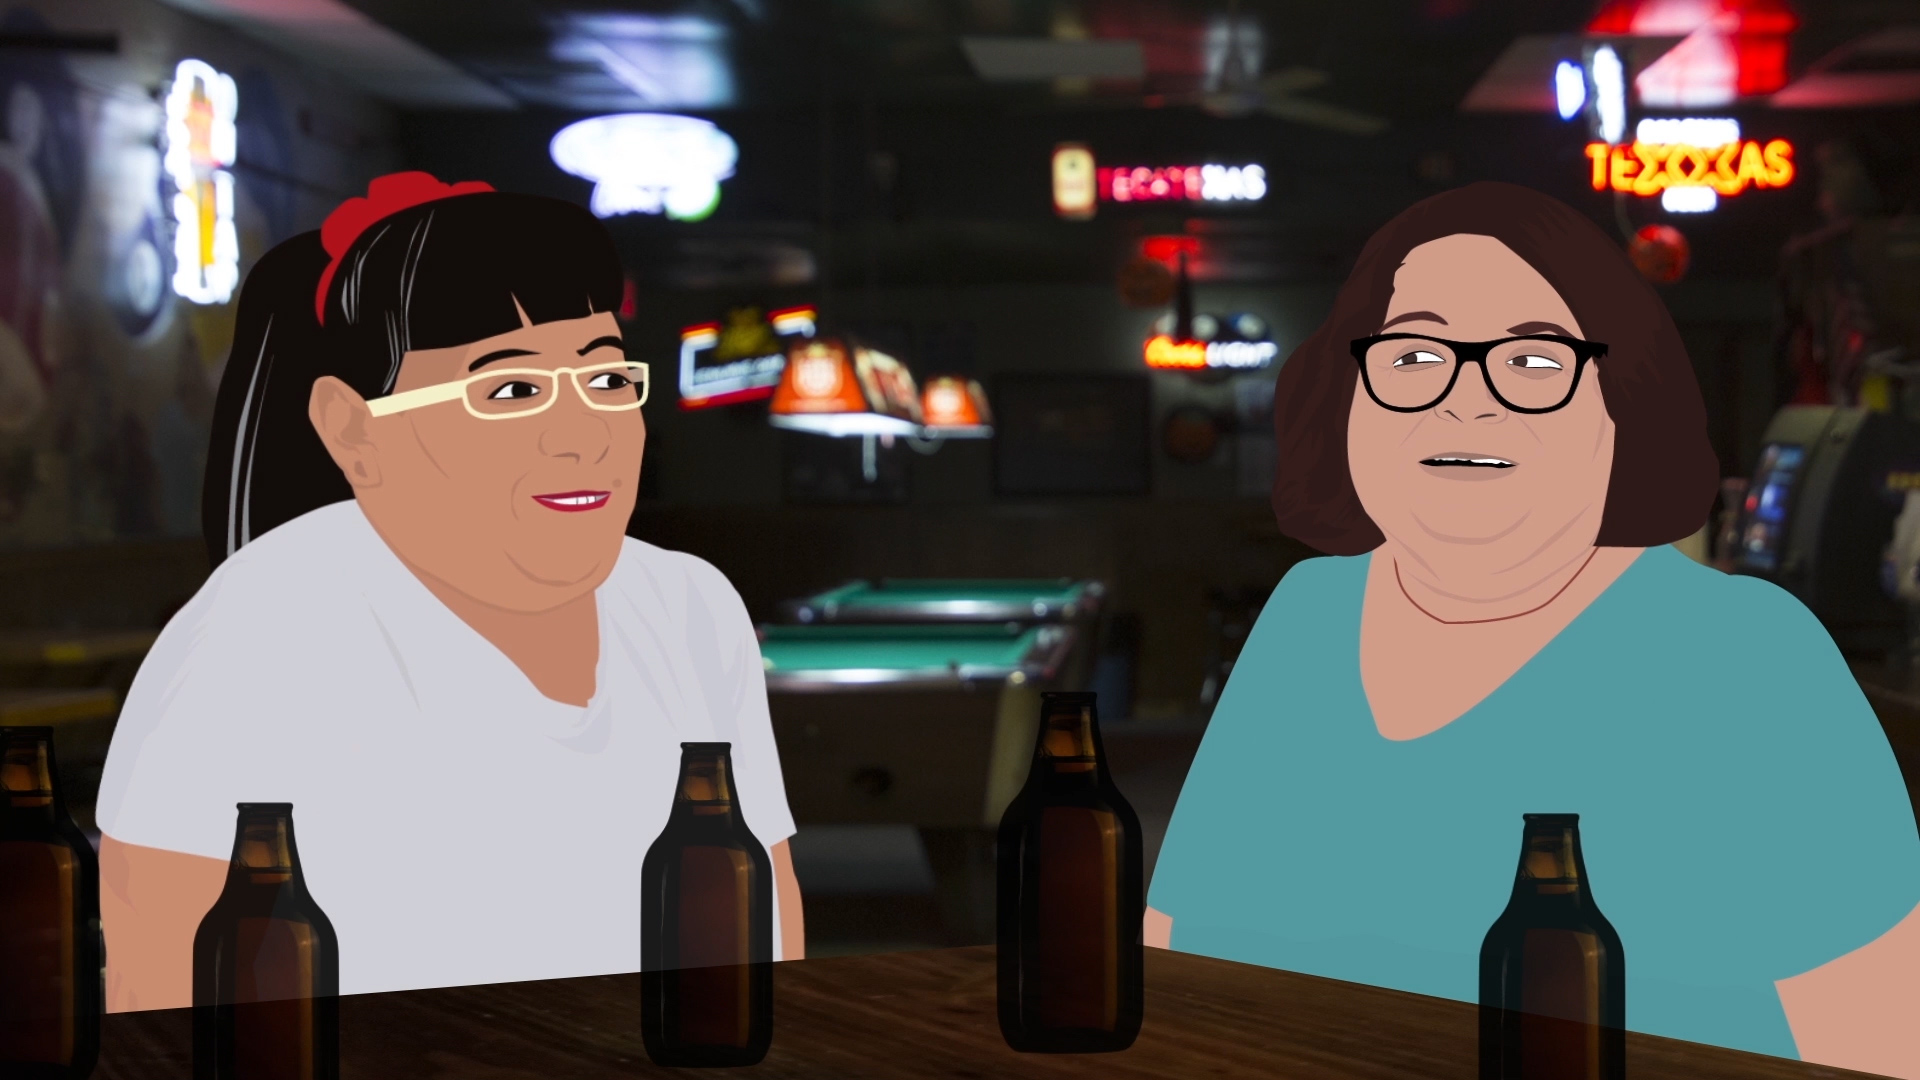 You Should Stream: Robert Gonzales' Boojalé Cartoon Series Is Full of South Texas Humor